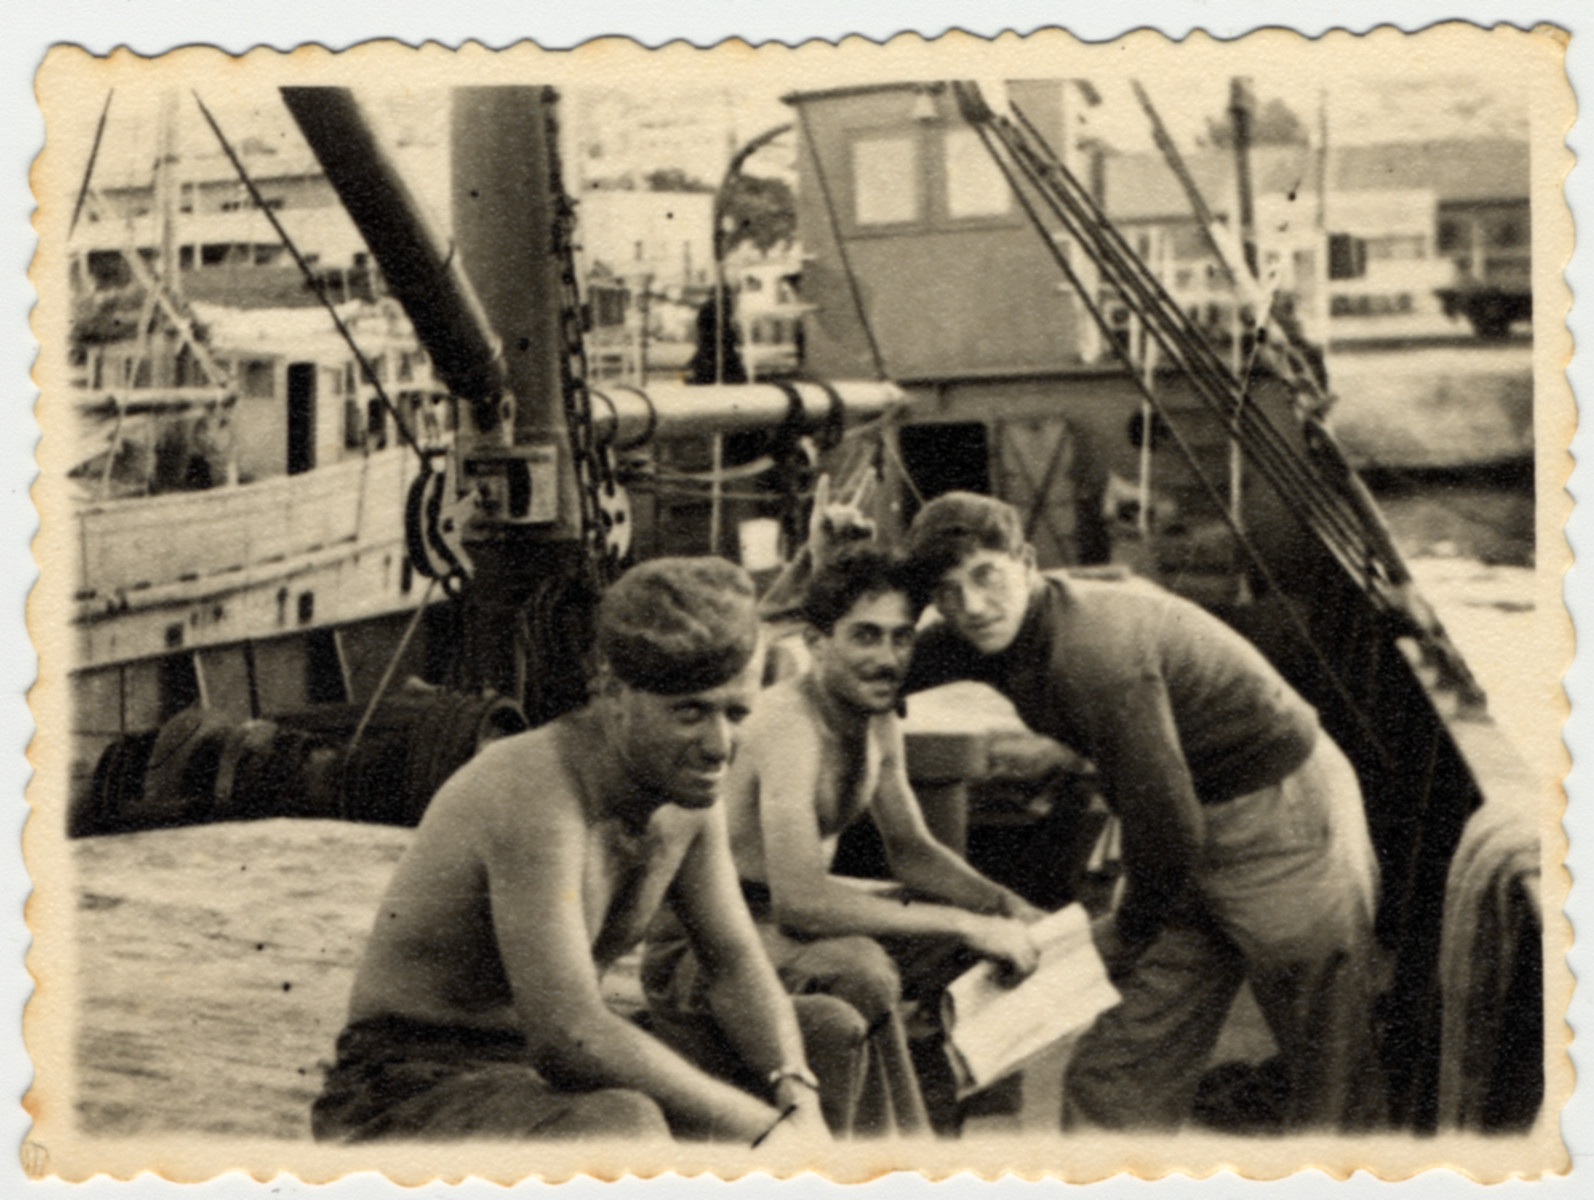 Three crew members of the SS Hannah Szenes relax on a dock in Haifa harbor.  Myron Goldstein is leaning over on the far right.